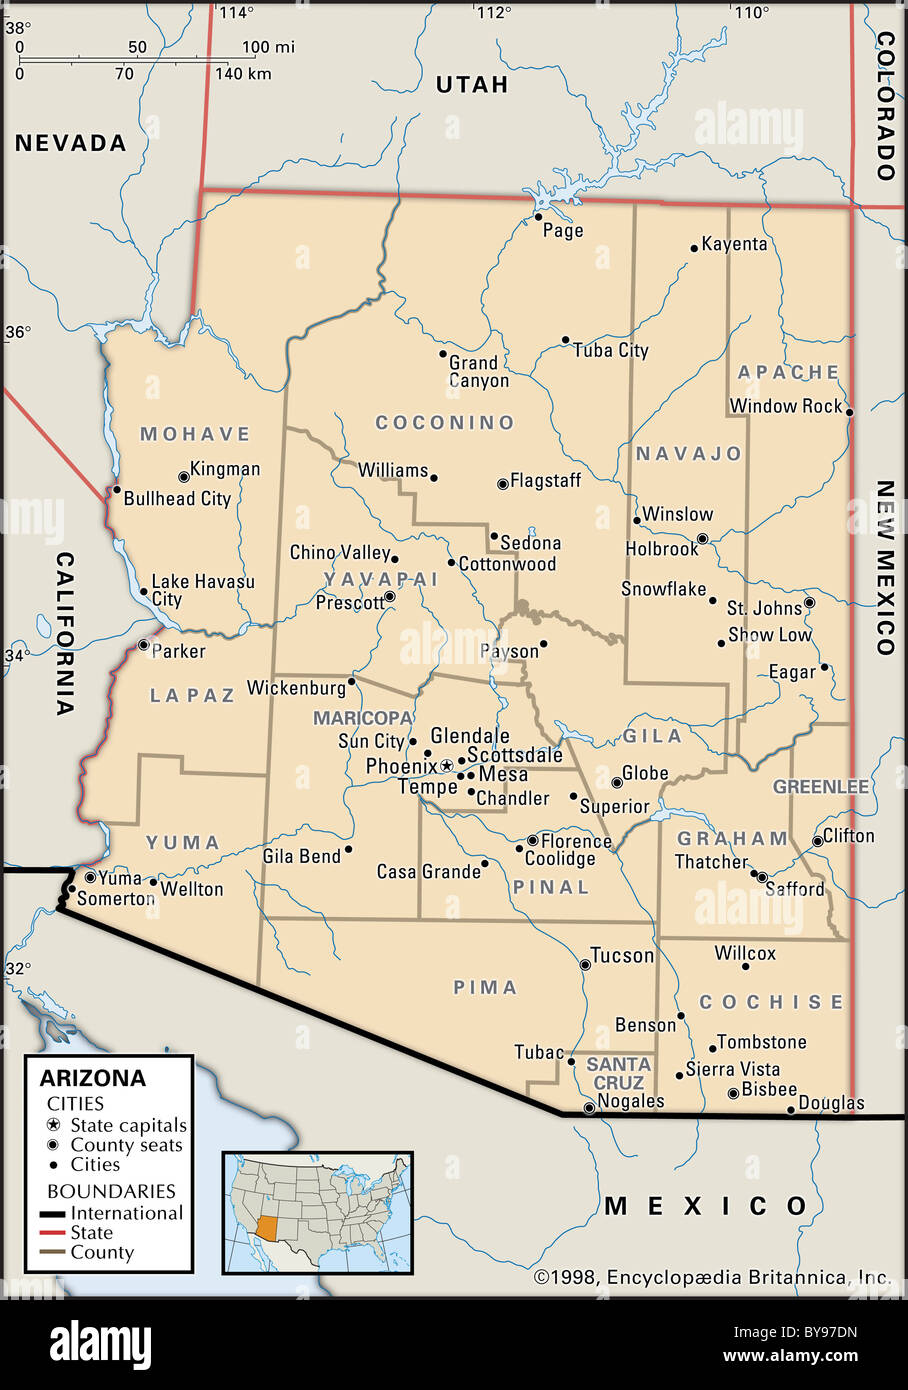 County Map Of Arizona With Cities.Political Map Of Arizona Stock Photo 34009521 Alamy